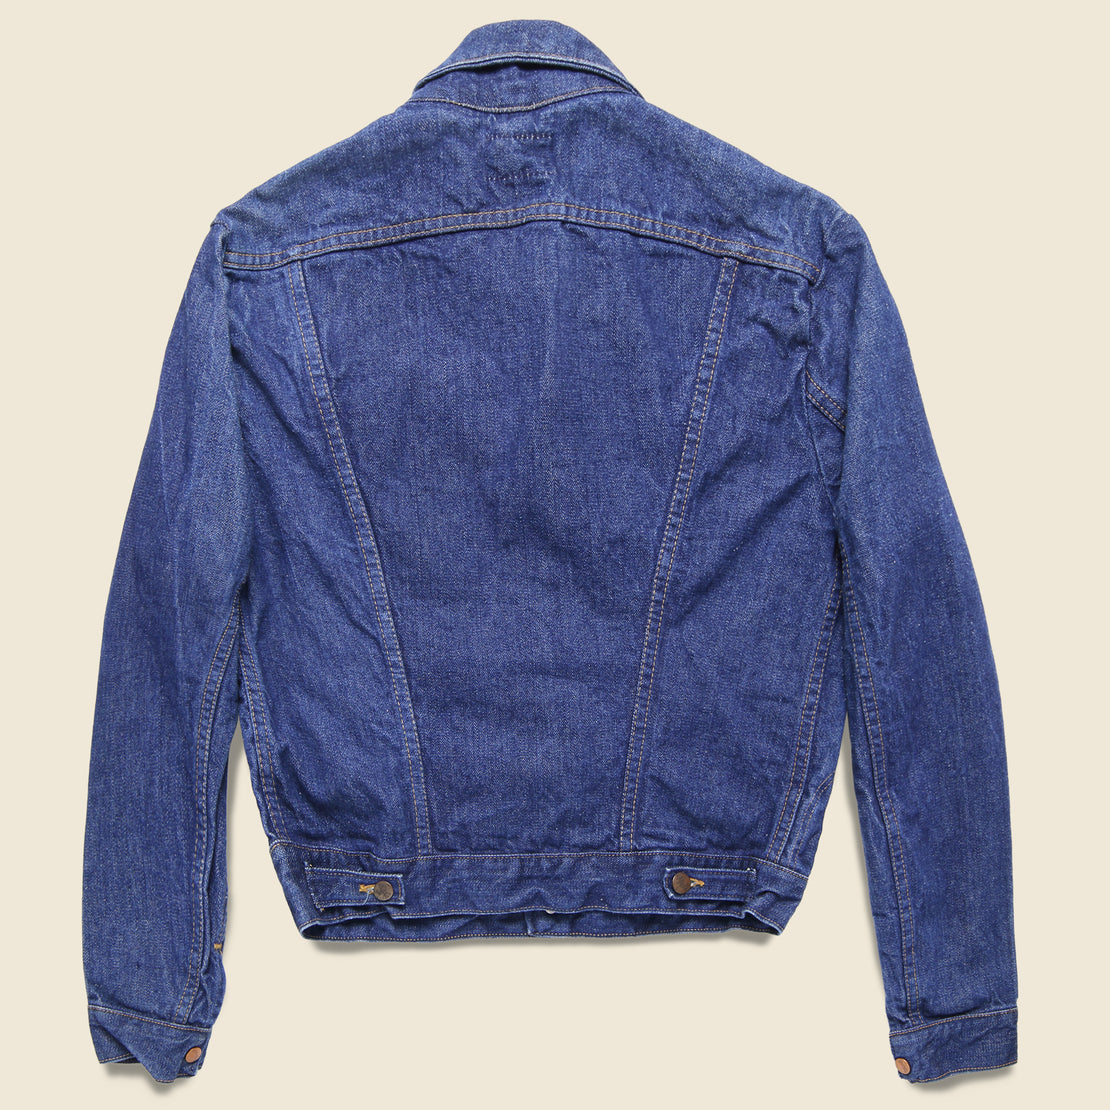 Wrangler Selvedge Denim Jacket - Dark Wash